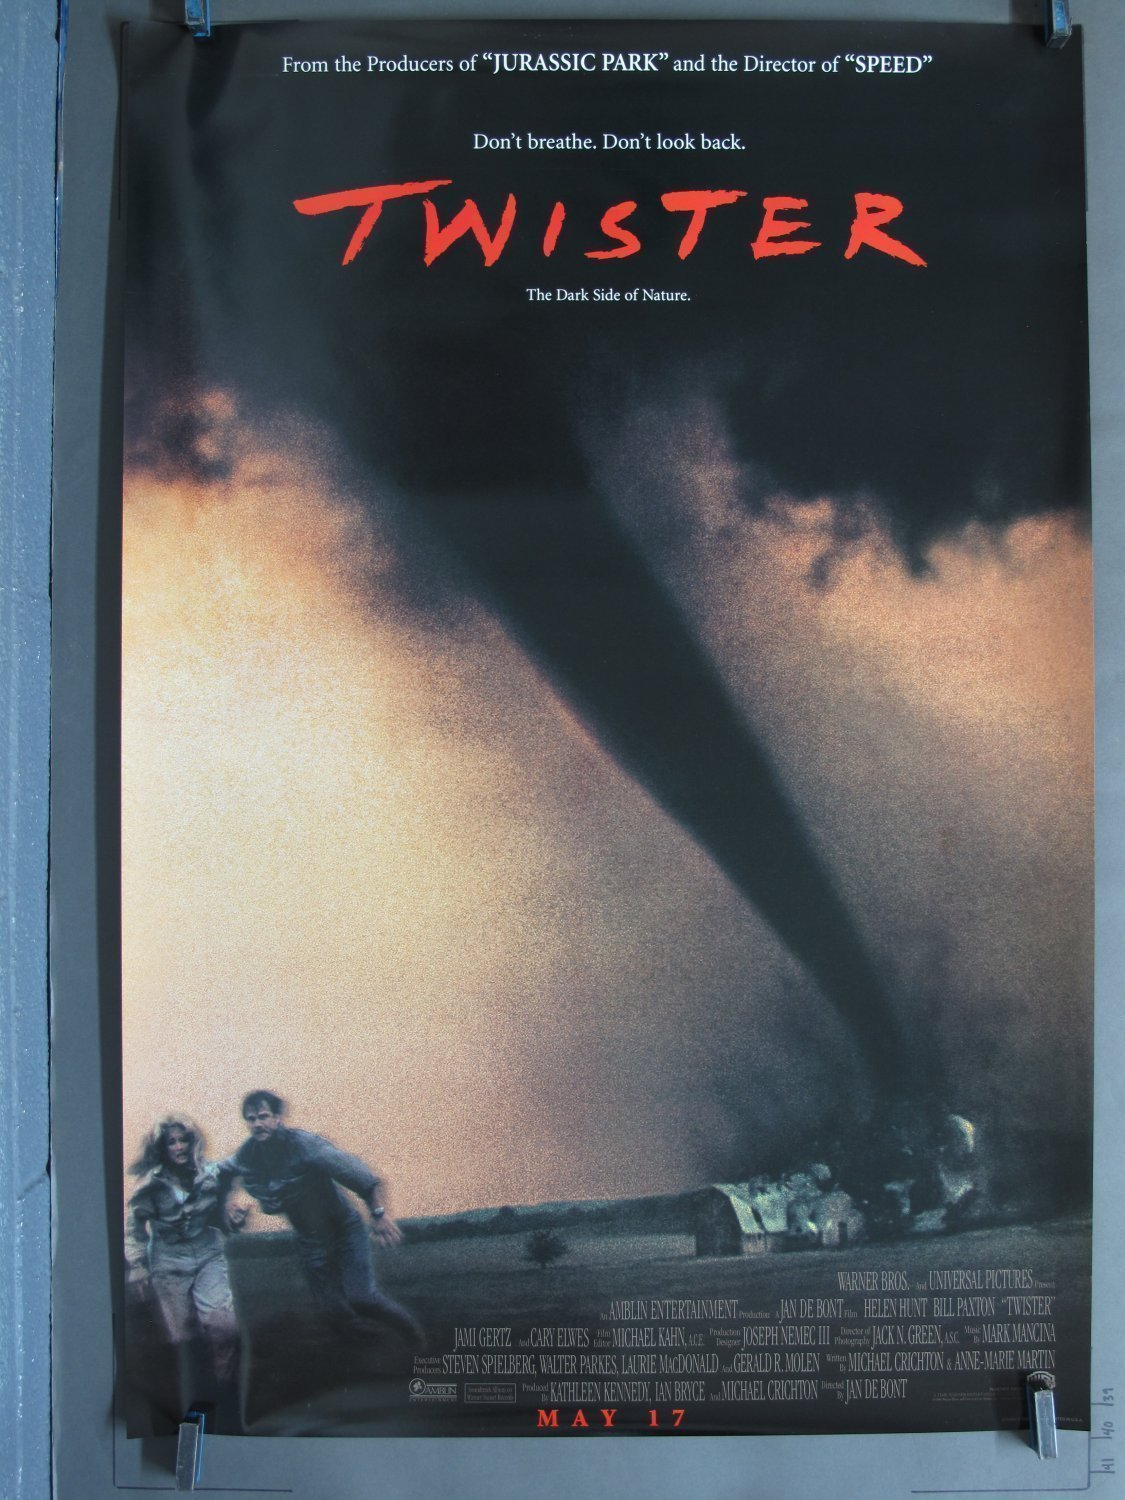 Twister 1996 Ds Advance One Sheet Poster For Sale